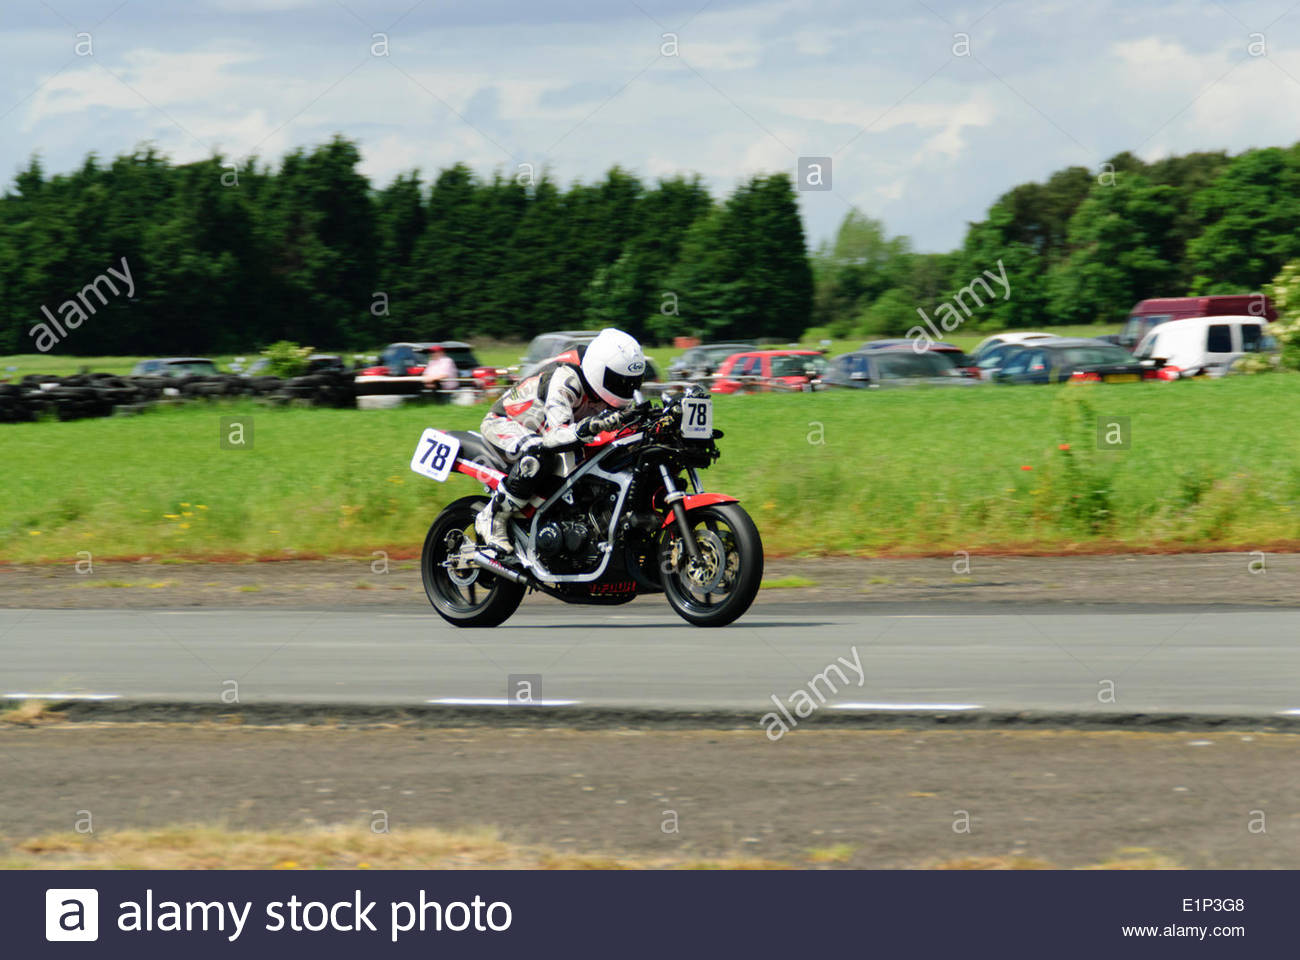 East Fortune, UK.  8 June,2014.  Lee Teesdale (78)on a Honda VF1000F in the Post Classic Senior race during the Bob MacIntyre Memorial Race meeting. Credit:  Roger Gaisford/Alamy Live News - Stock Image